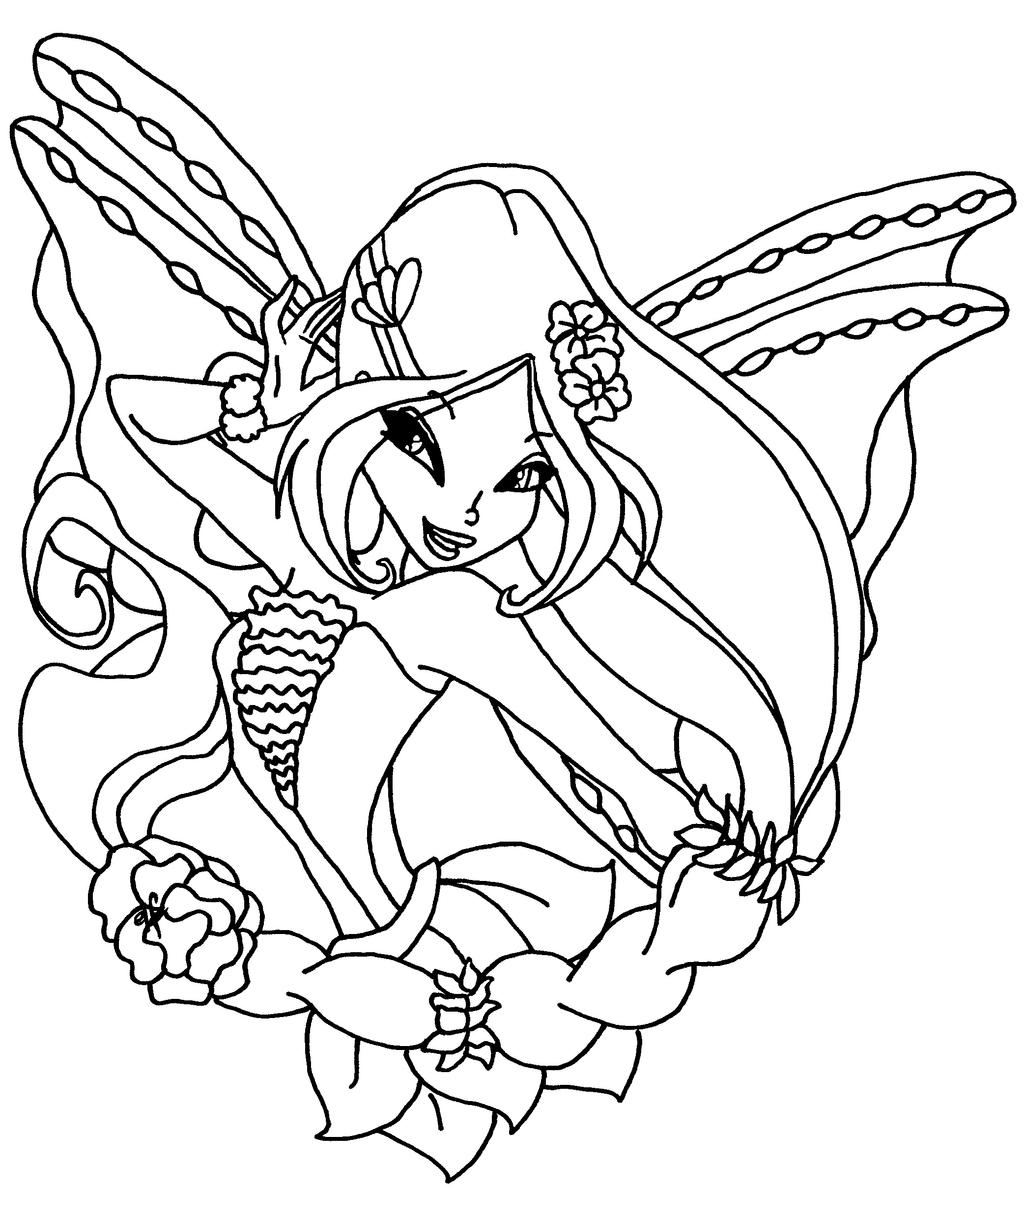 Flora From Winx Coloring Pages